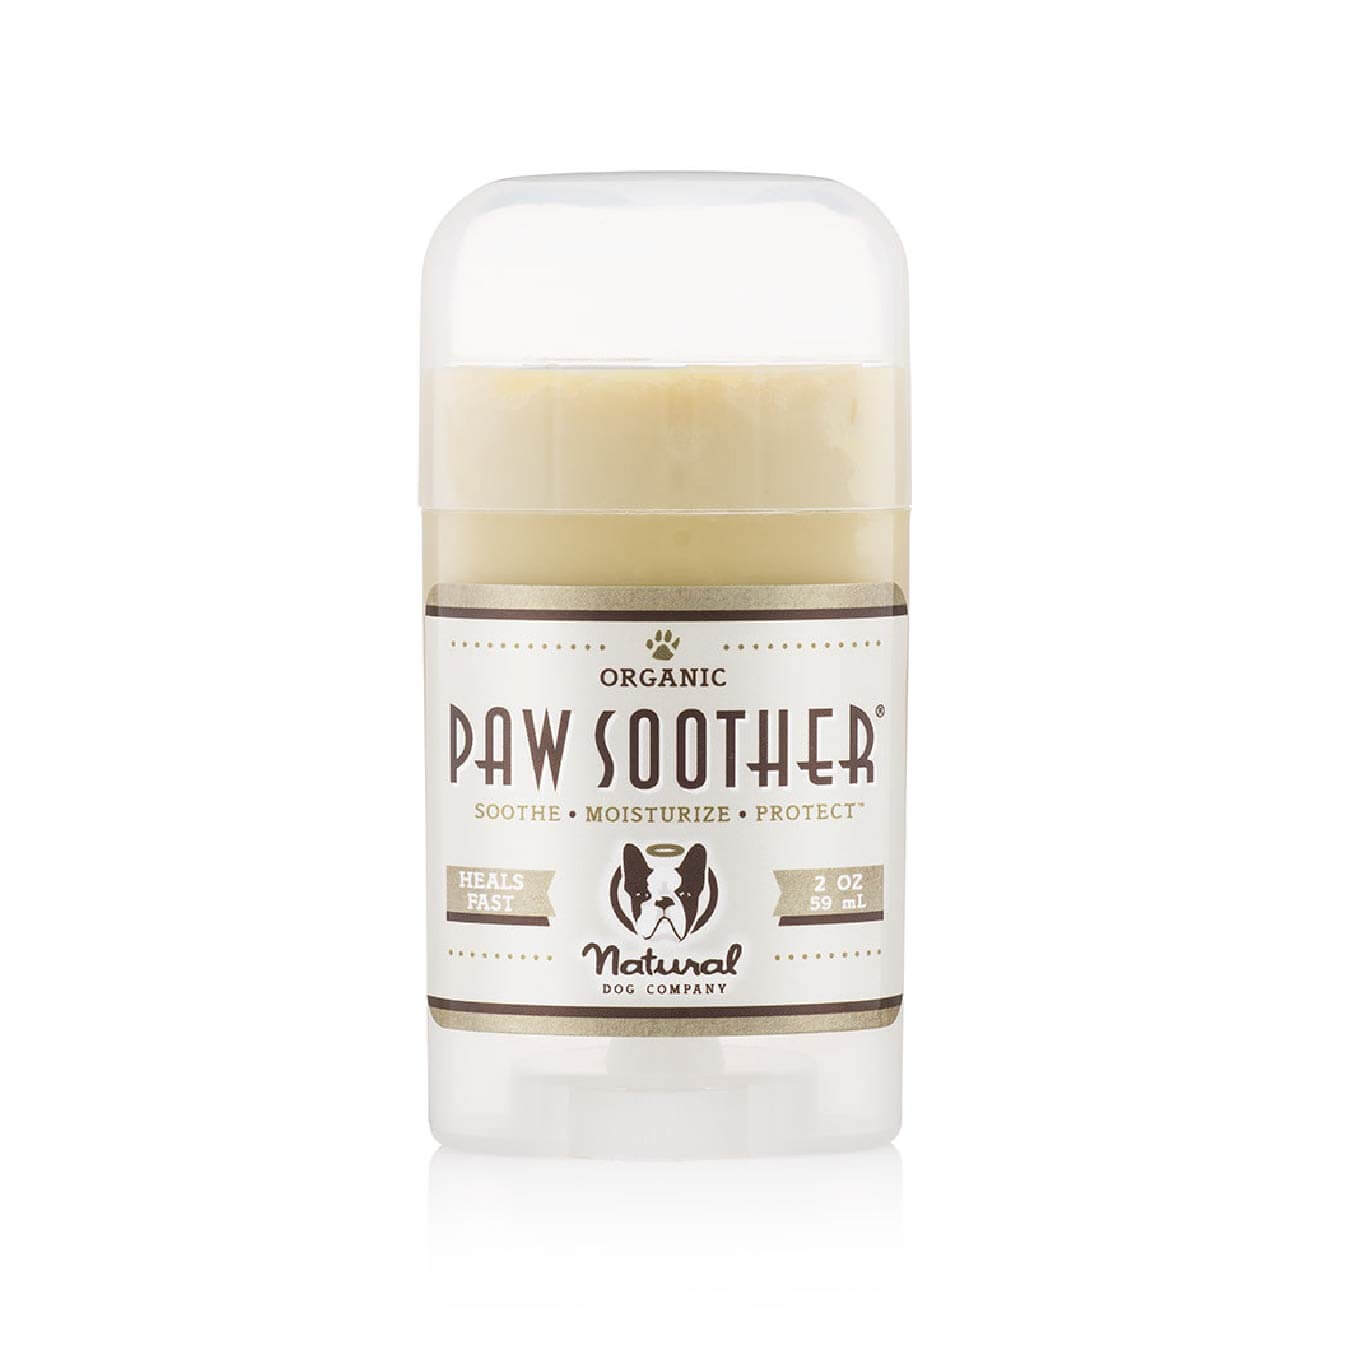 Natural Dog Company Paw Soother - BIS, Dogs, Grooming Essentials, Natural Dog Company, Puppy, Skin - Shop Vanillapup - Online Pet Shop